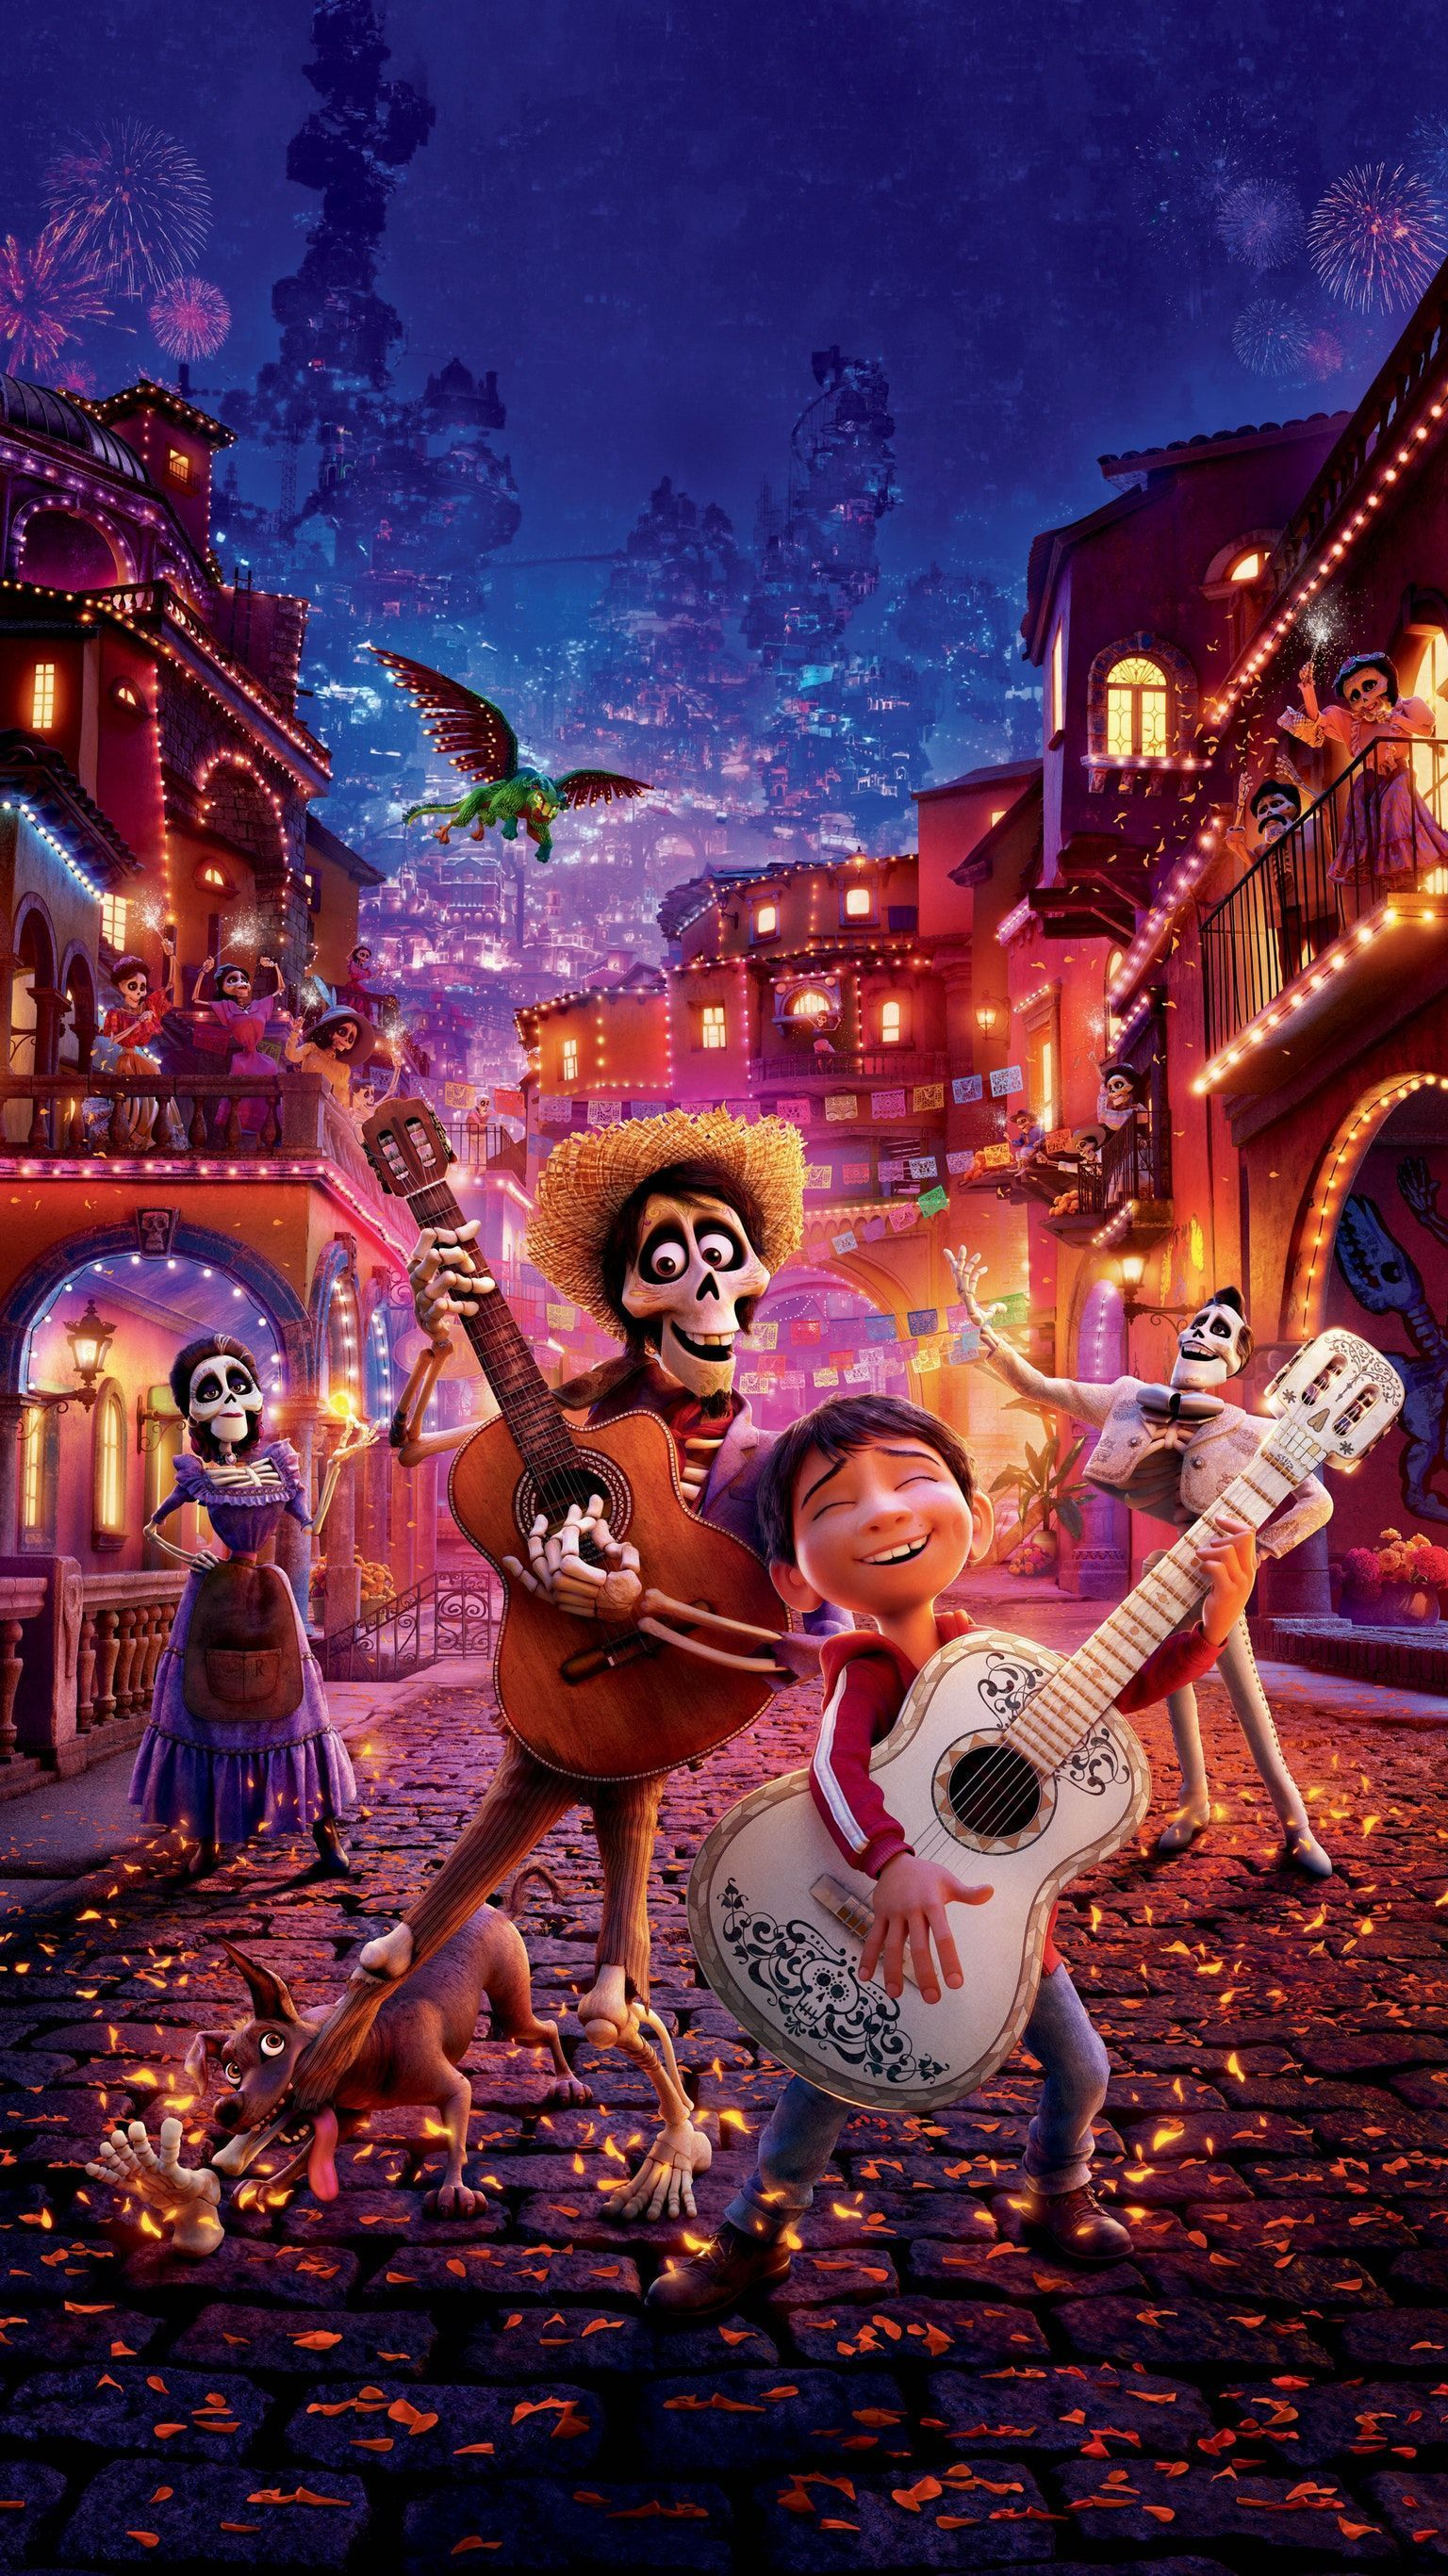 35 Coco Disney Wallpapers Download at WallpaperBro (avec